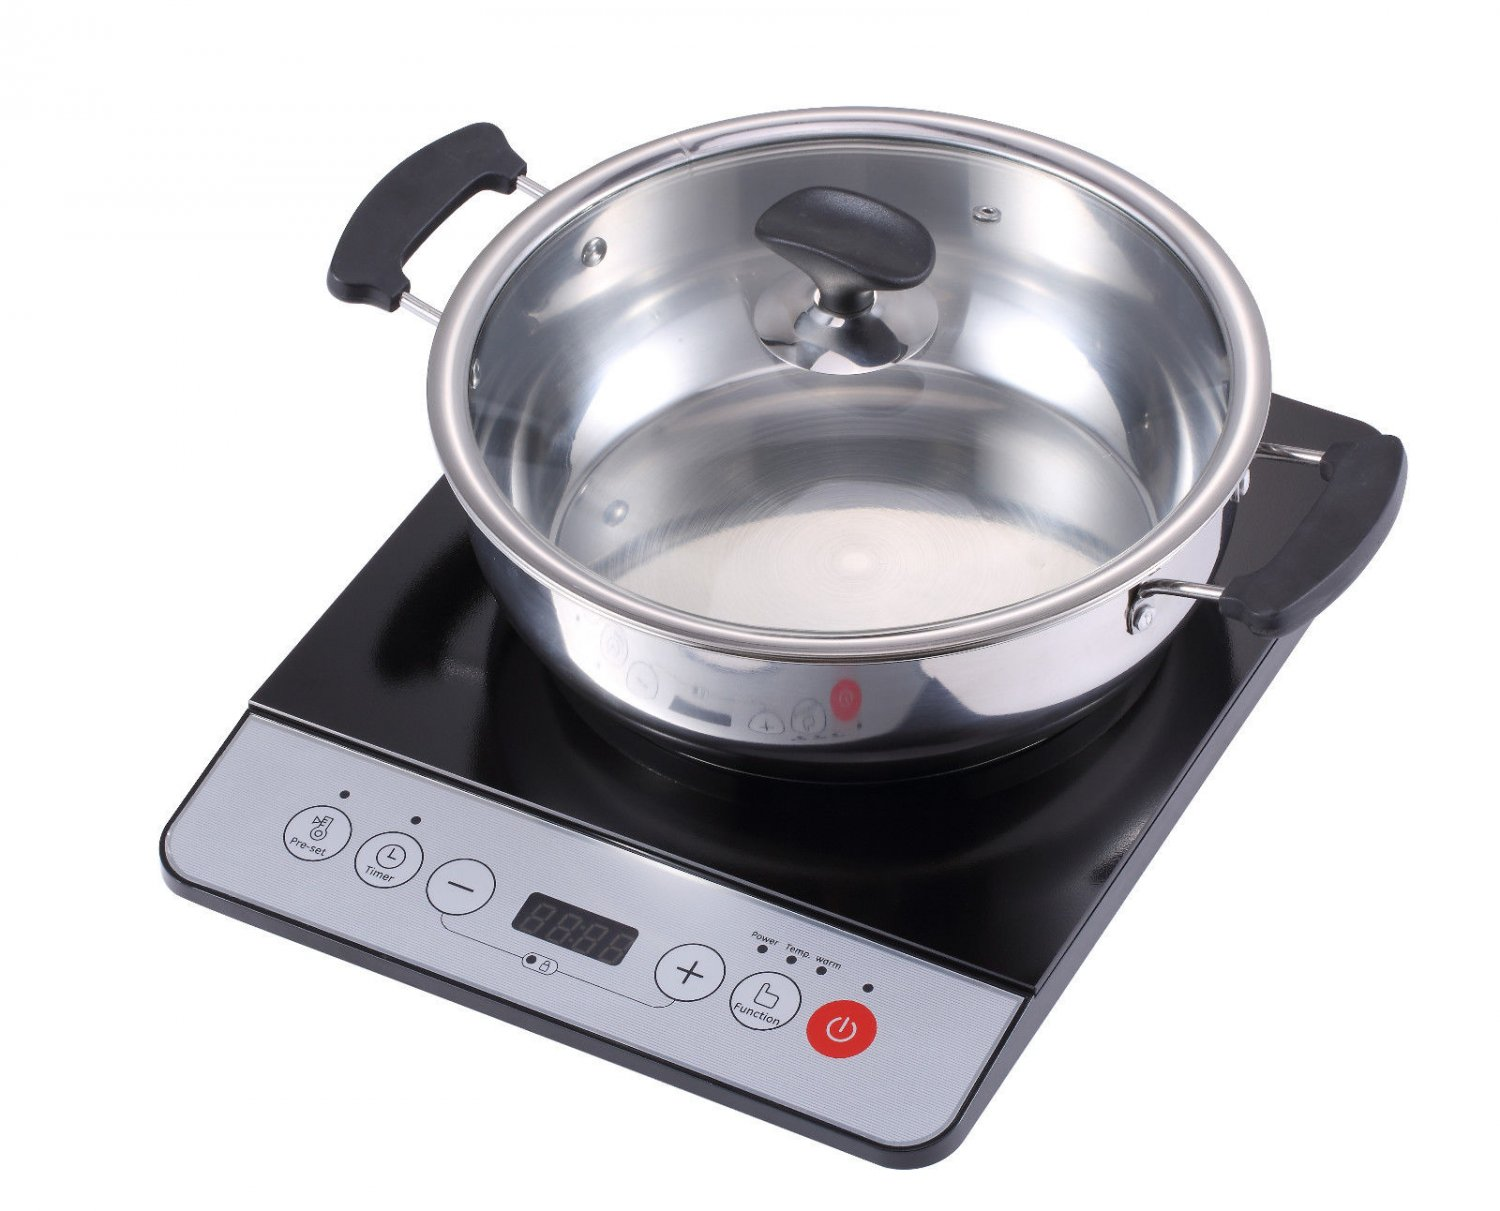 new midea 1500w induction cooktop cooker with stainless steel pot table hotpot. Black Bedroom Furniture Sets. Home Design Ideas